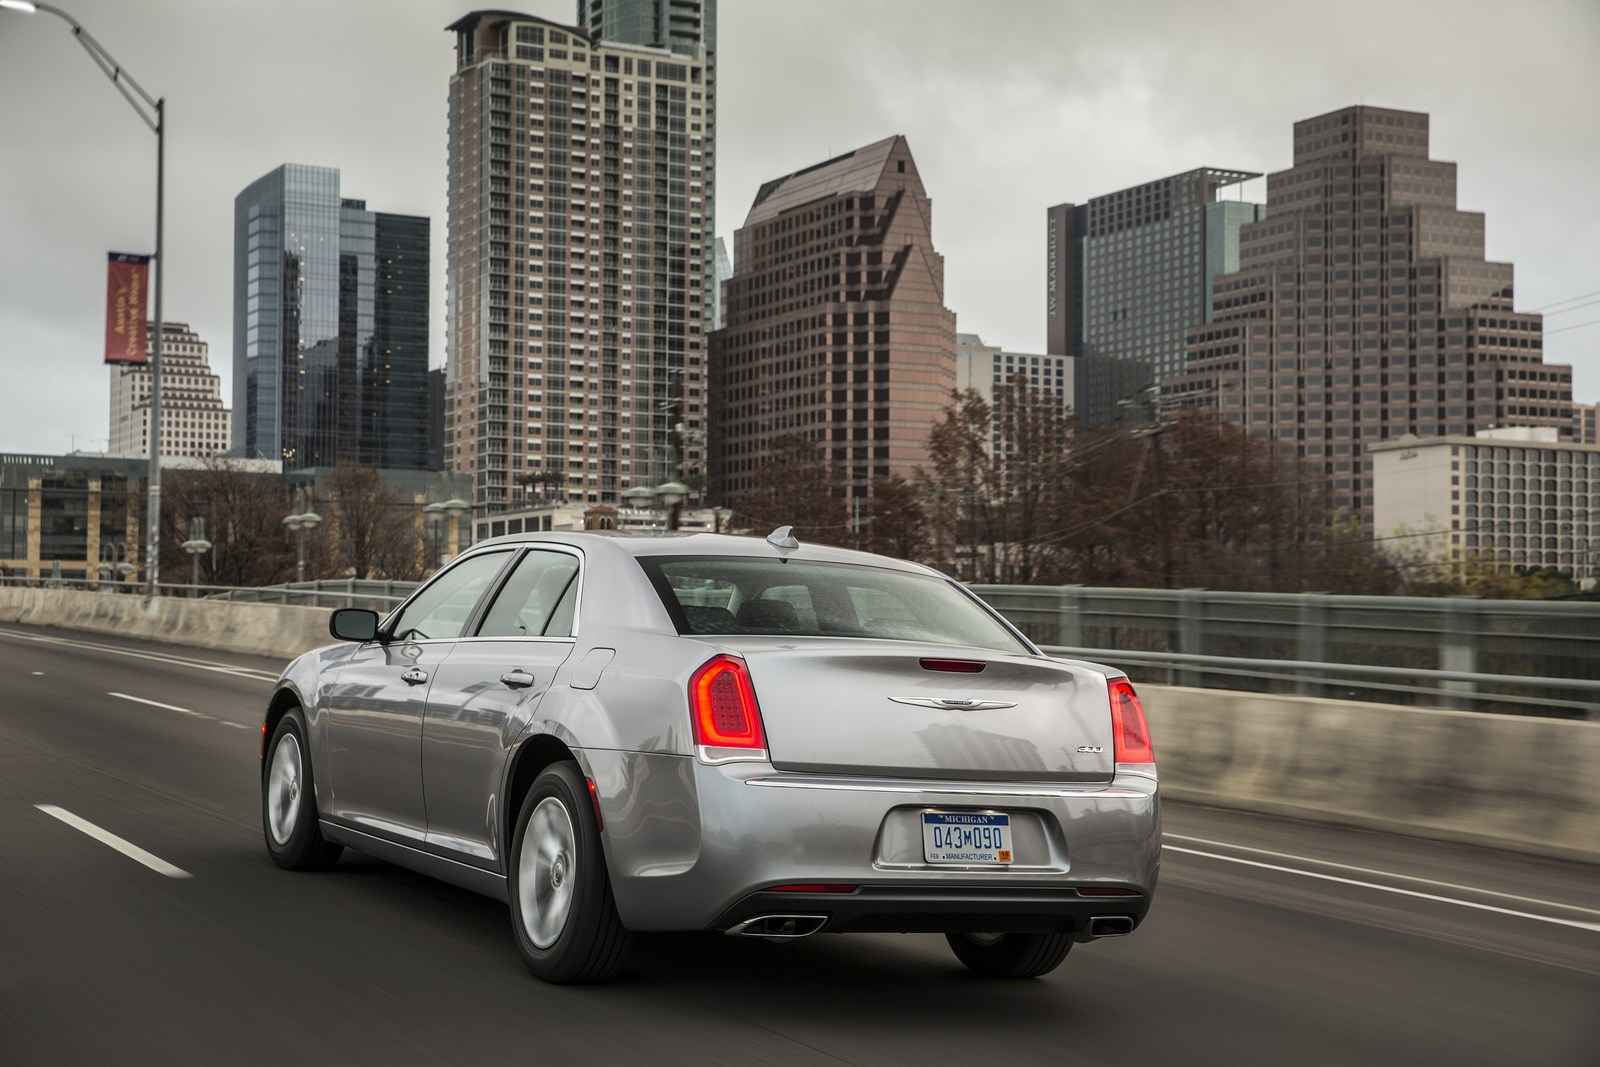 Consumer Reports Names The Chrysler 300 A Recommended Vehicle Following Software Update | Carscoops